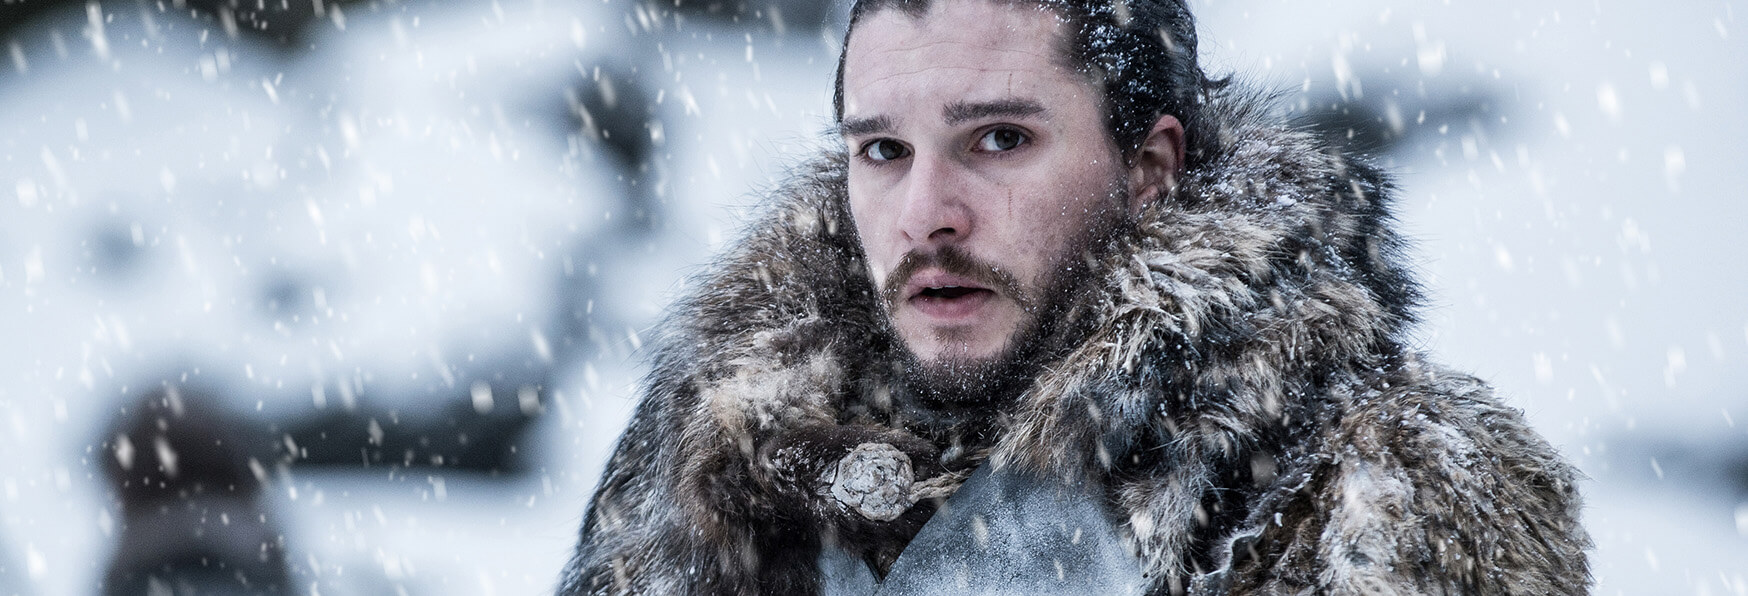 Game of Thrones: l'8° Stagione arriverà probabilmente in Ritardo